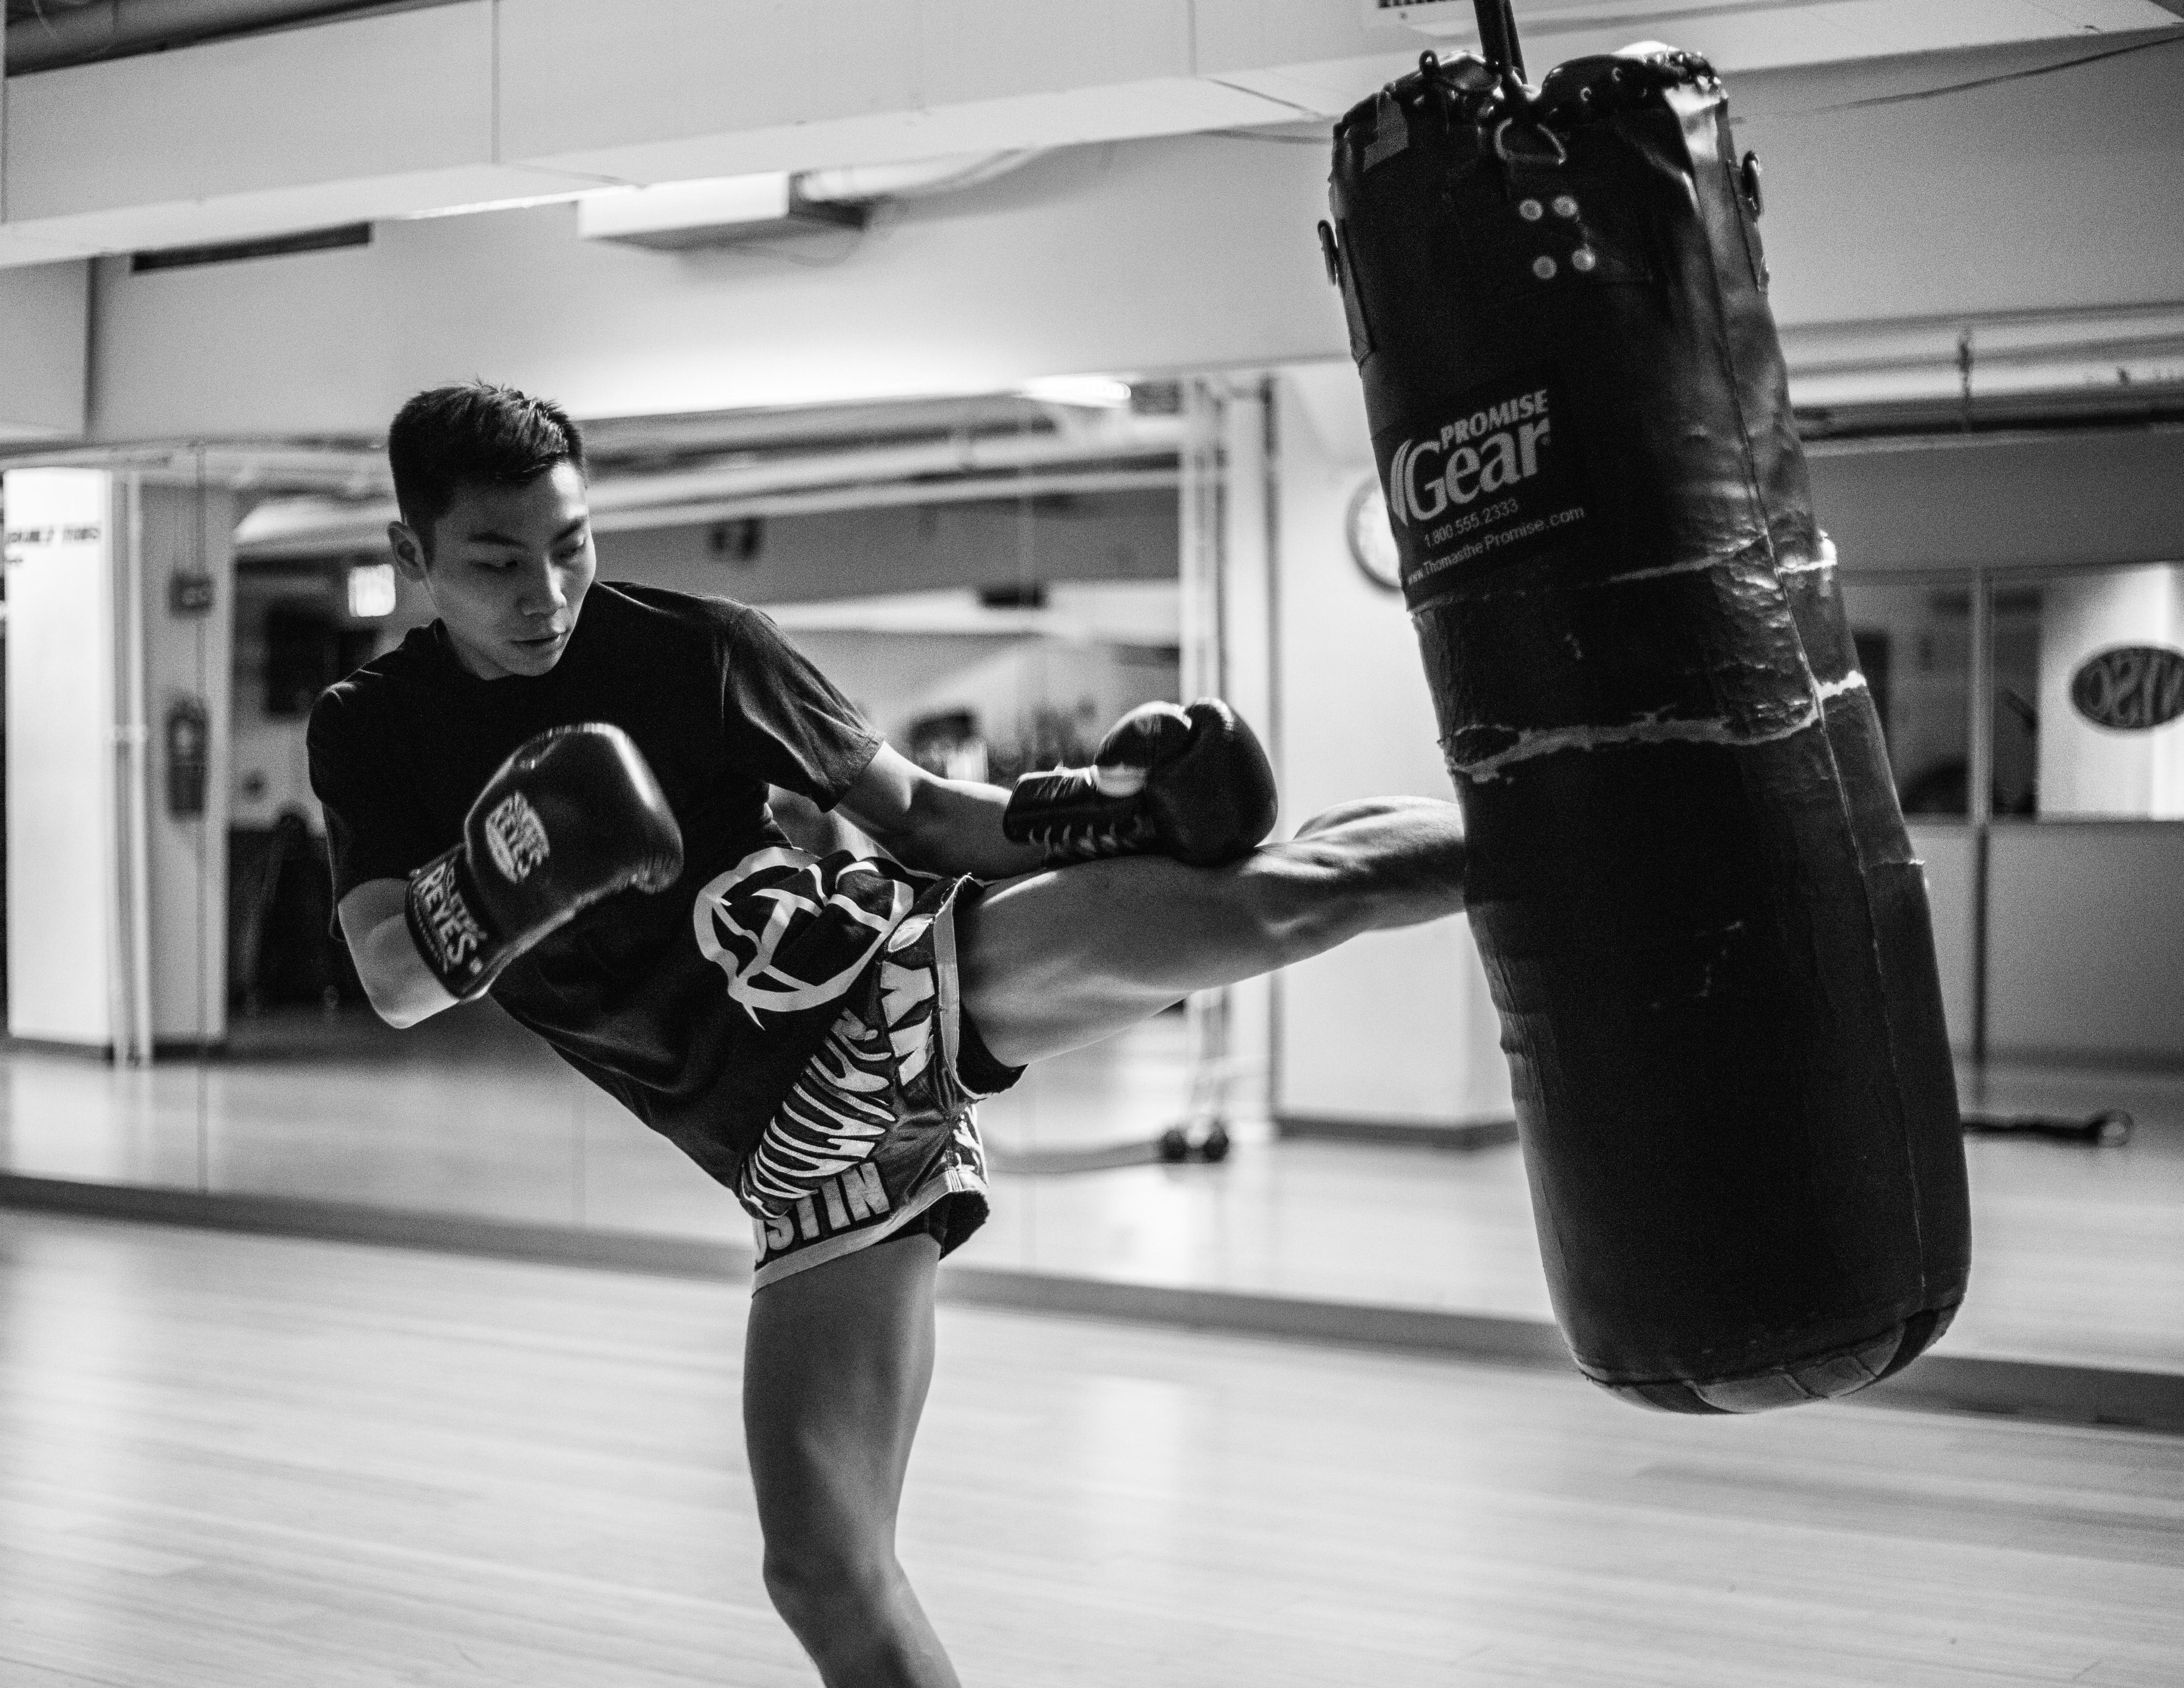 A man wearing boxing gloves, kicking a punching bag at a gym in Manhattan